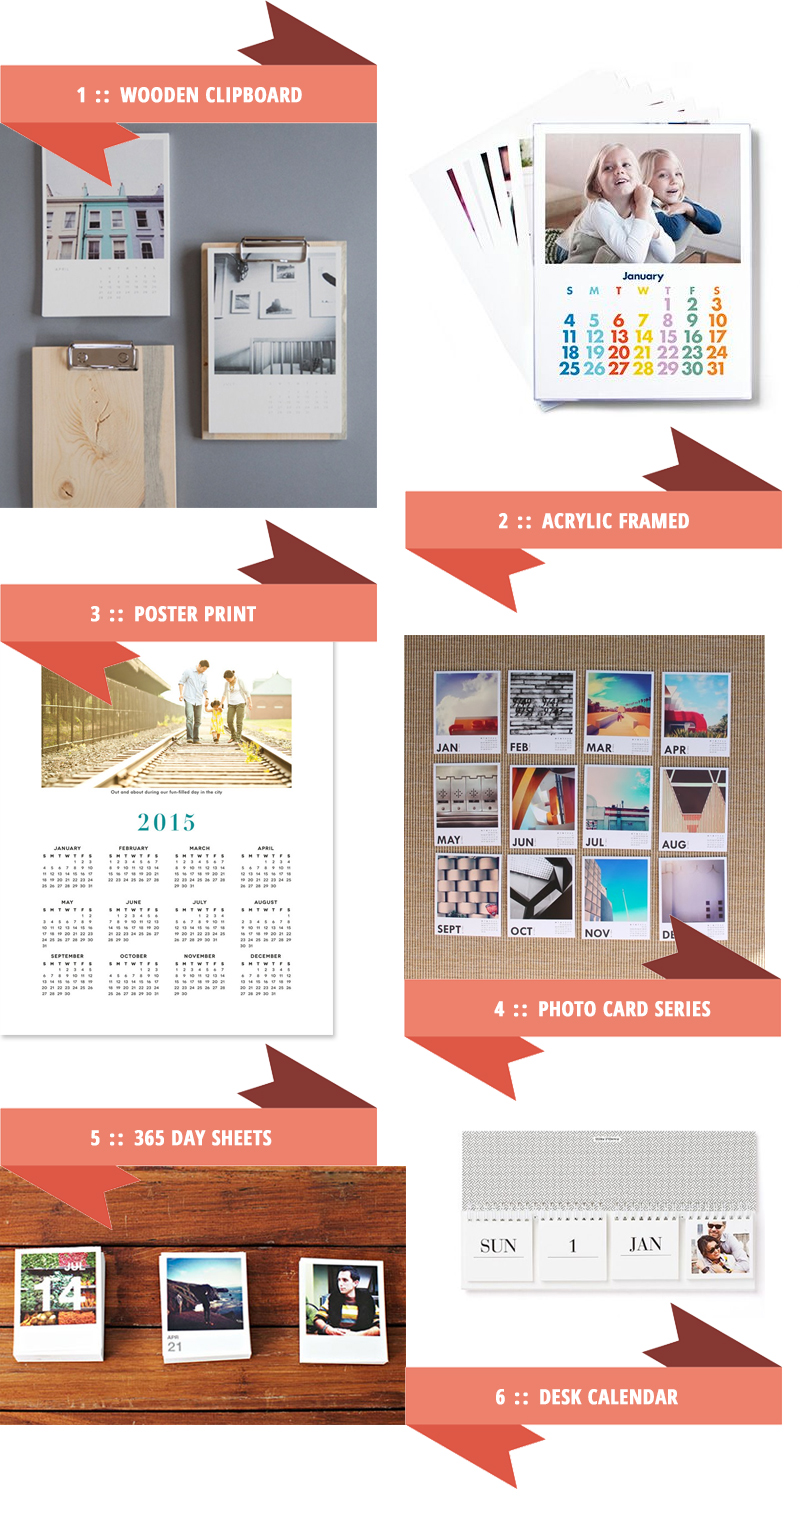 So many calendars, so little time. Love these 2015 custom photo calendar designs - especially the wooden clipboard one.